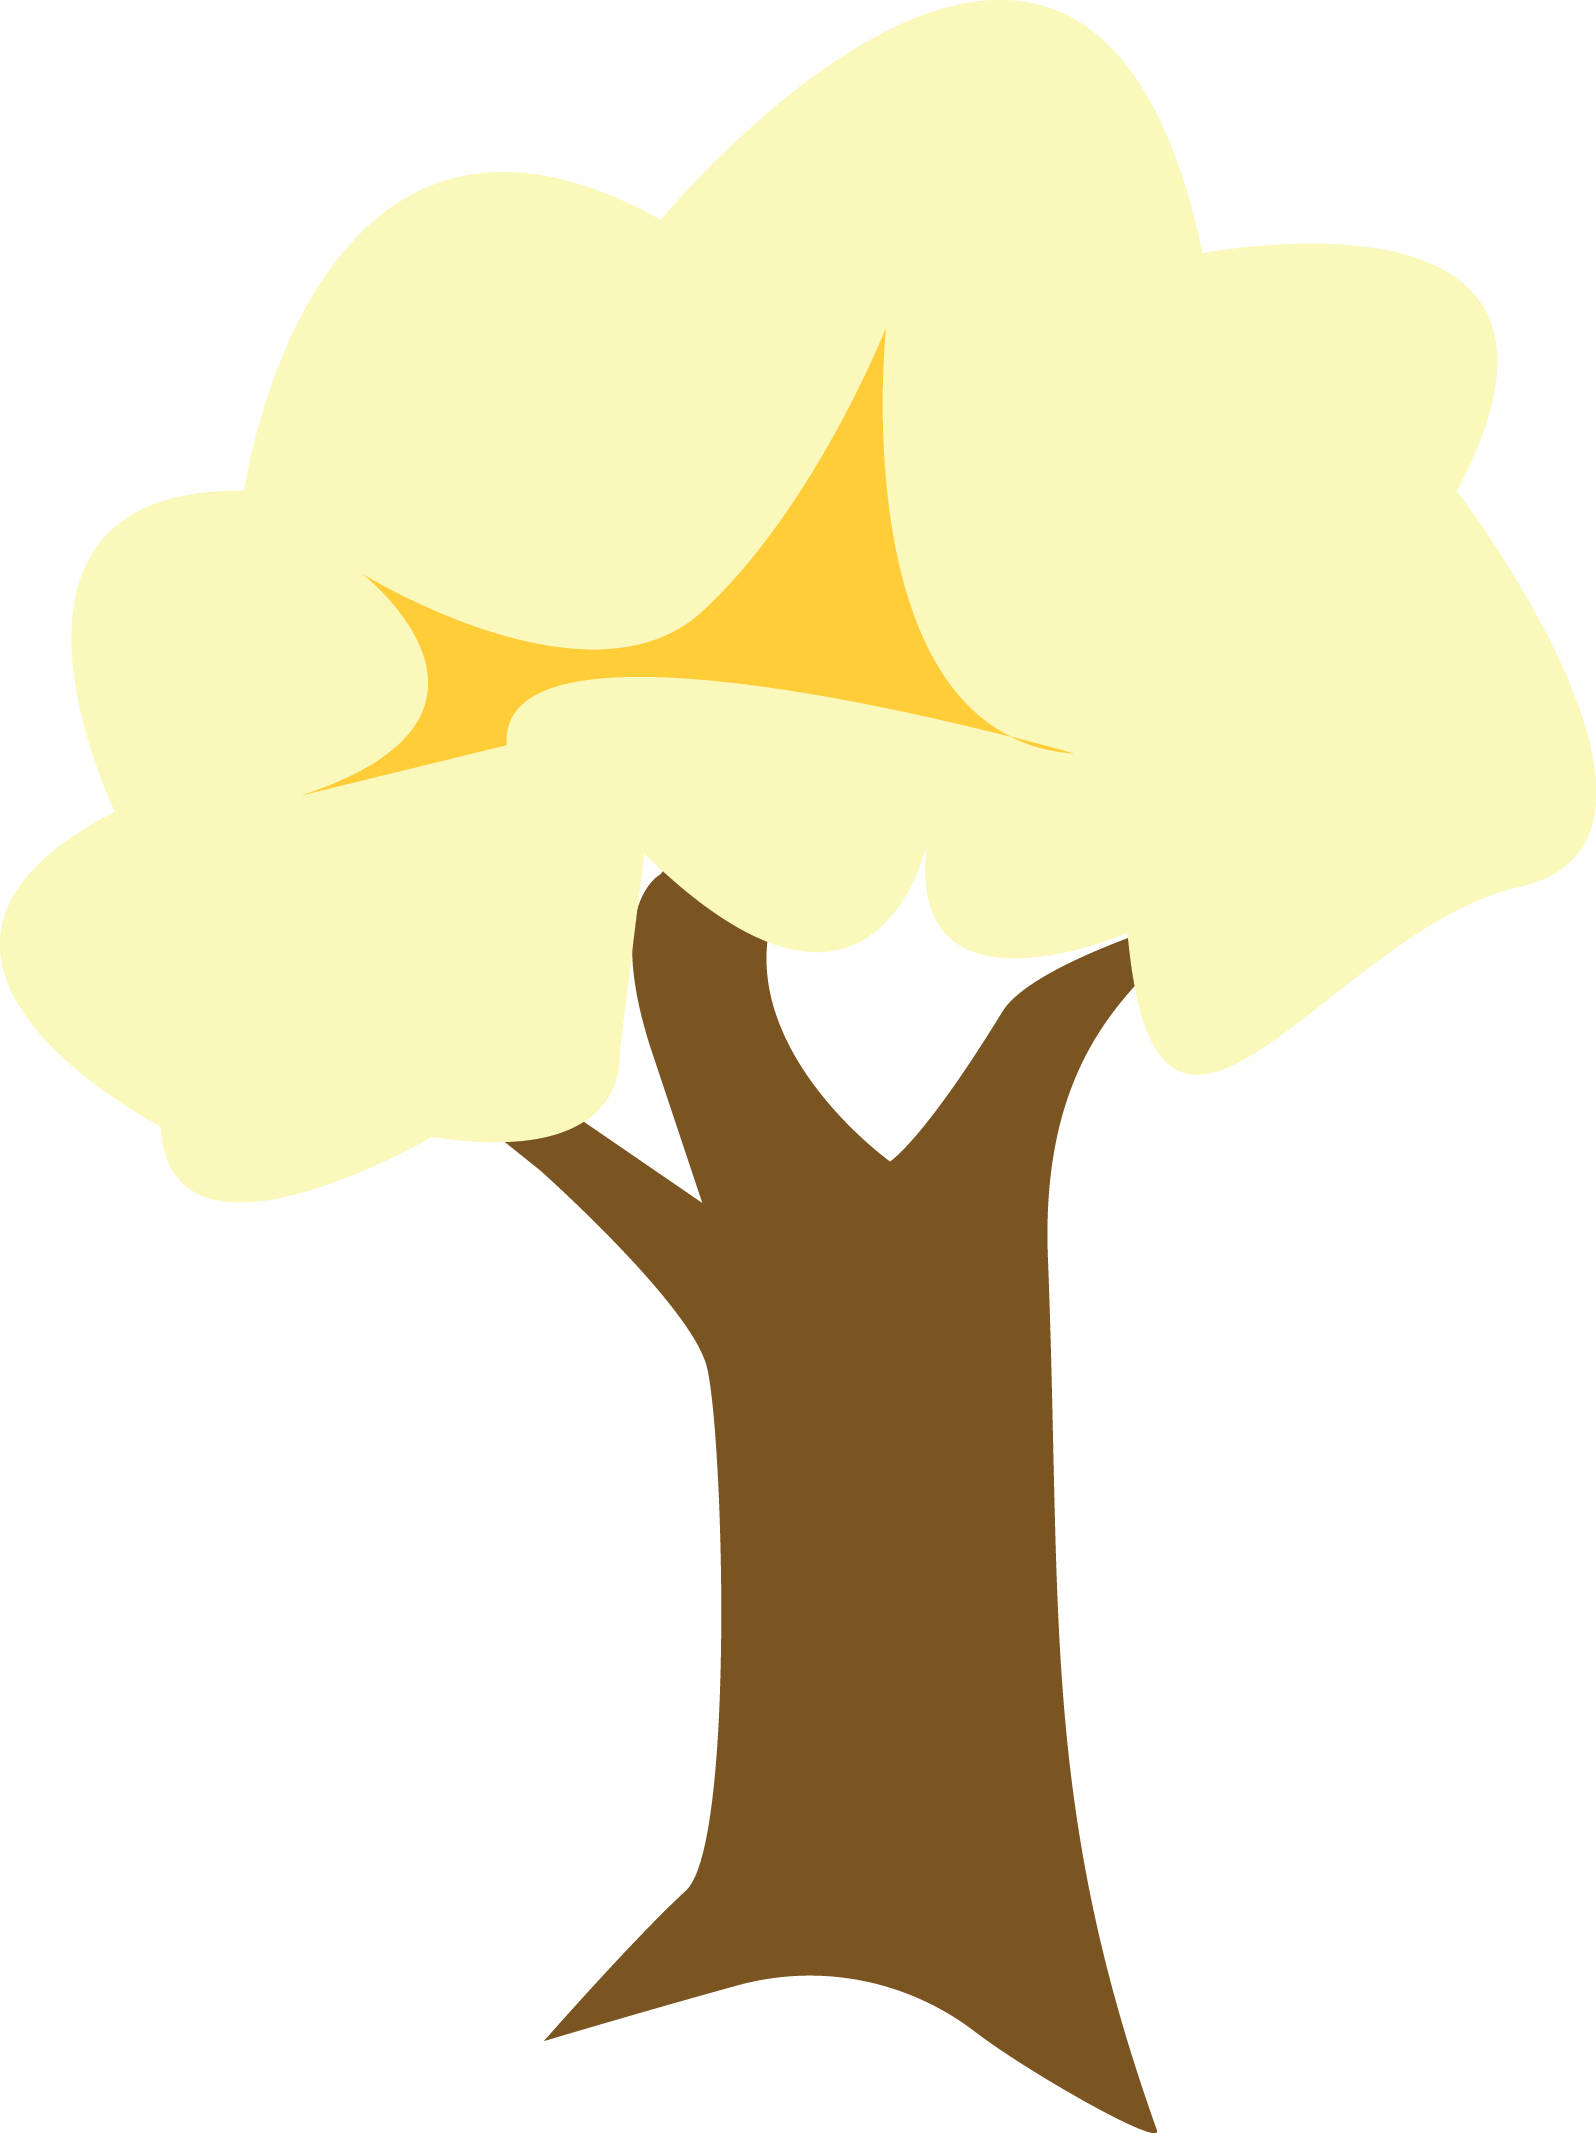 Planner clipart sub plan. Apricot tree planning stickers